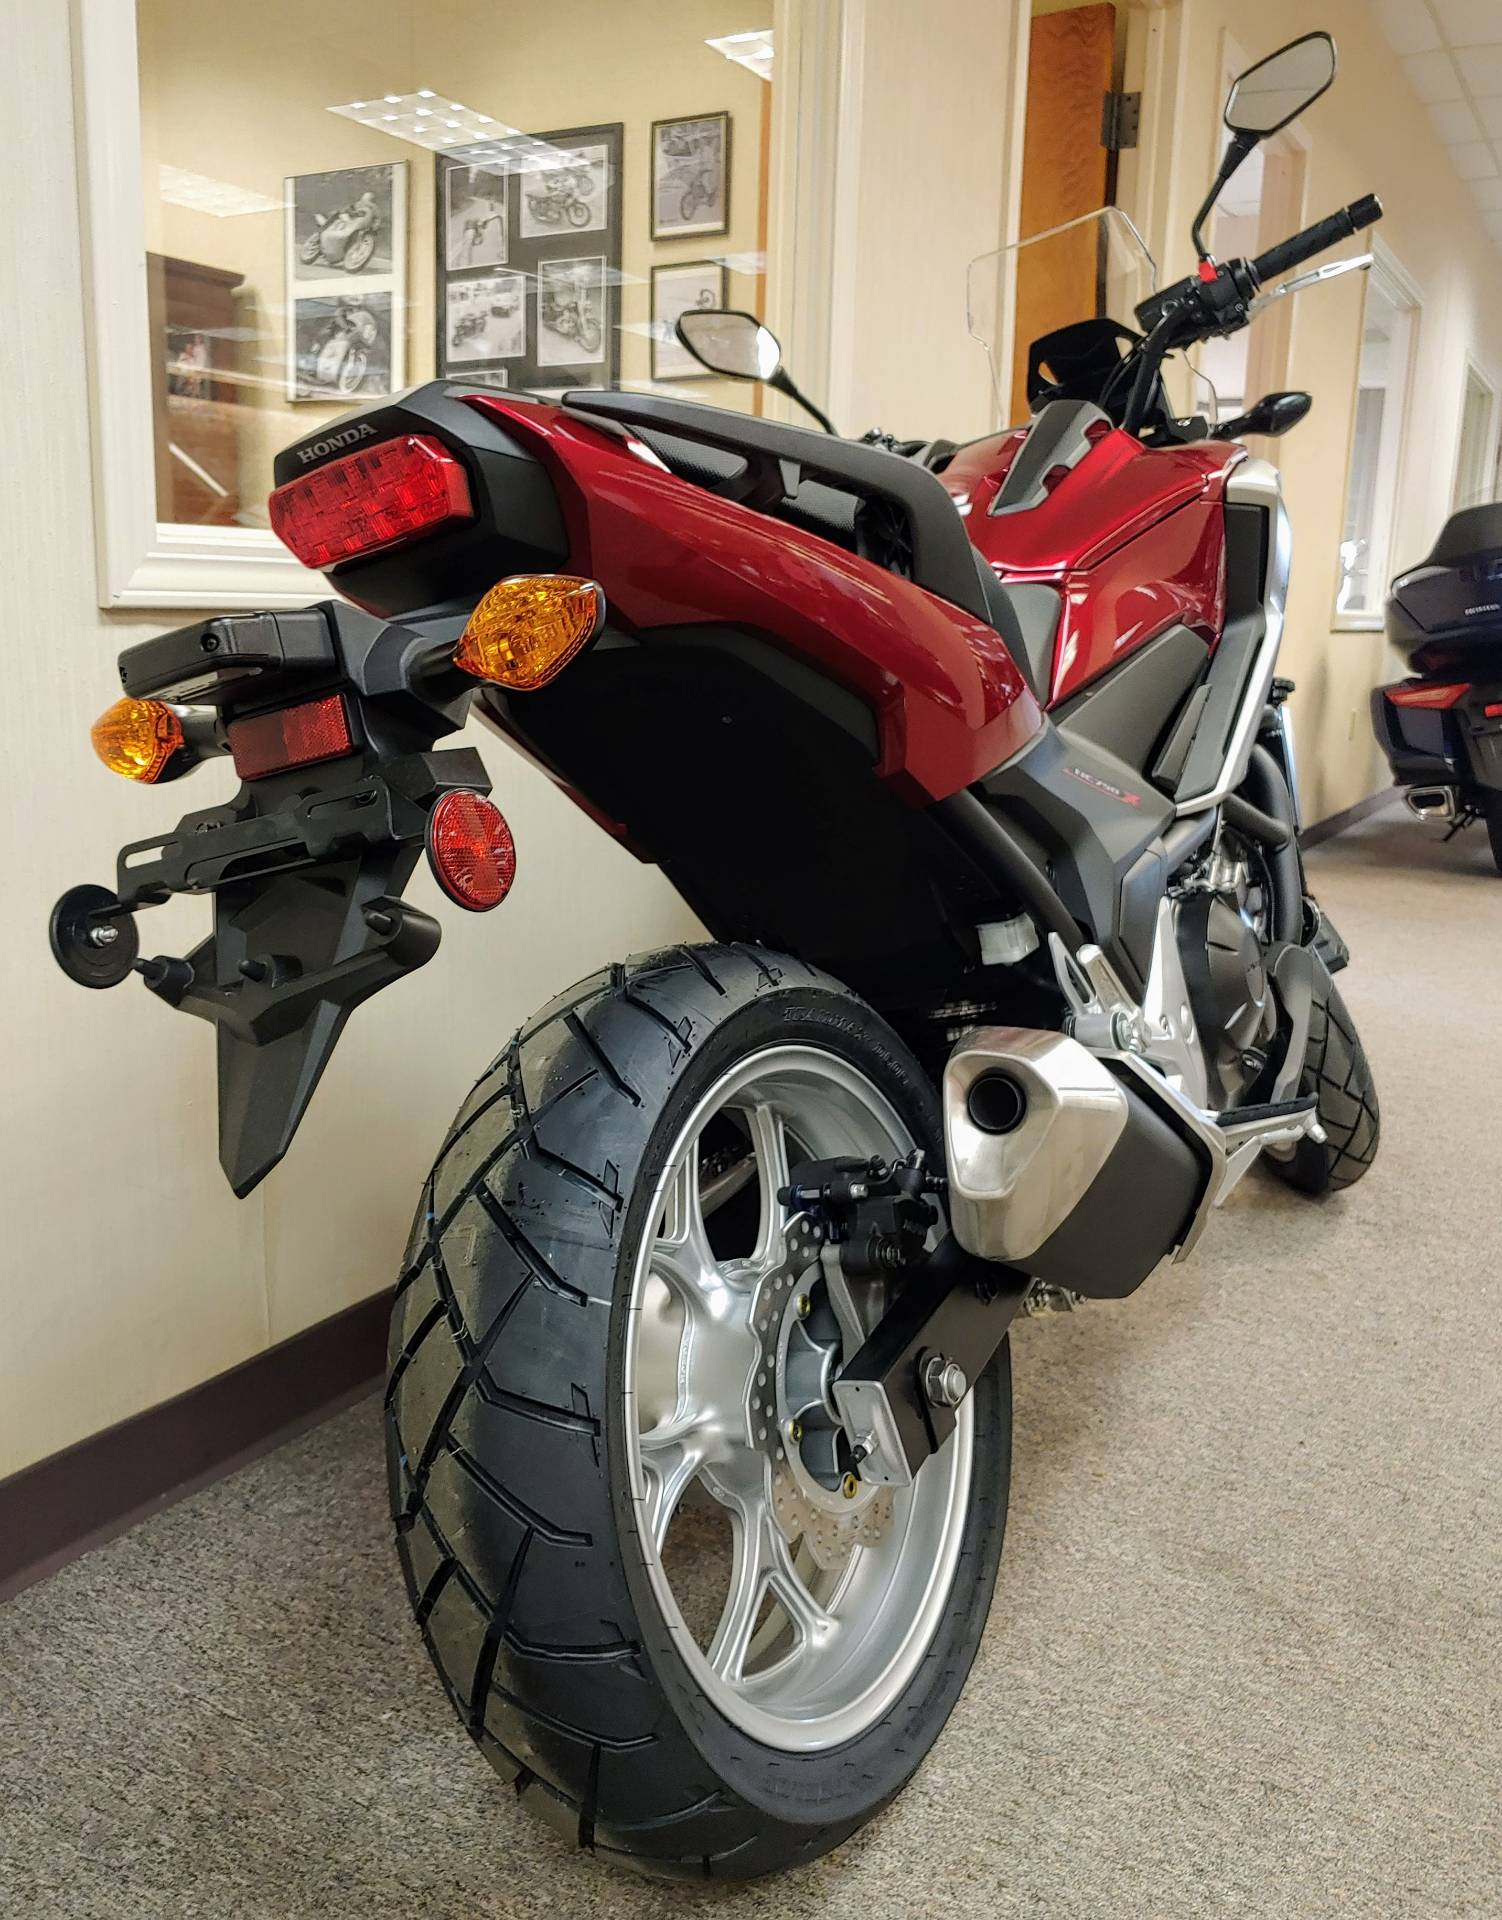 New 2018 Honda Nc750x Motorcycles In Statesville Nc Stock Number